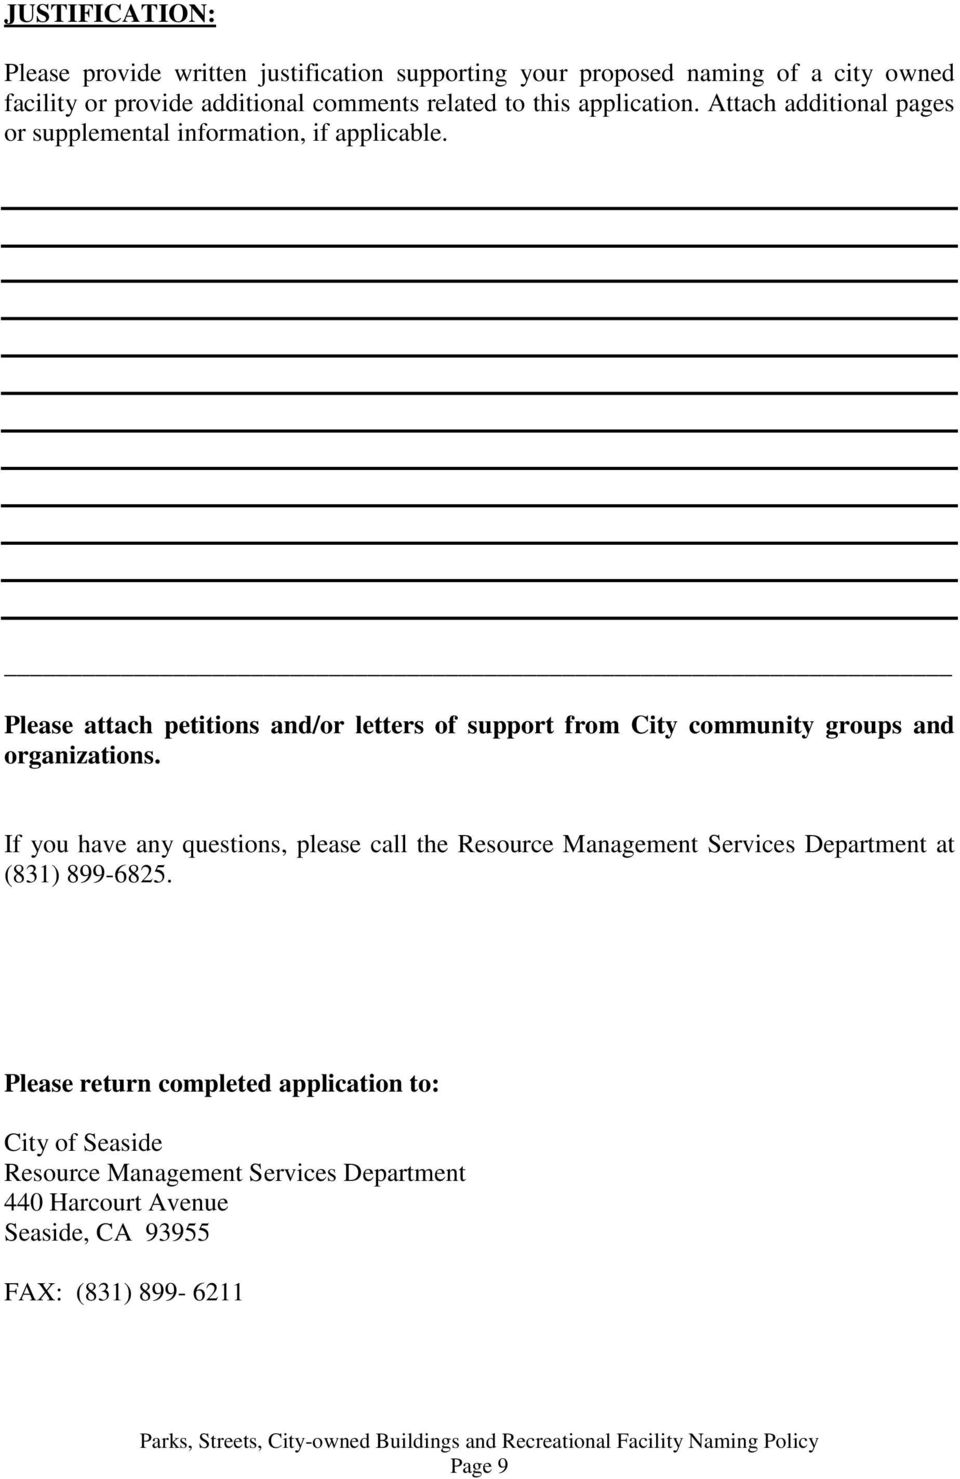 Please attach petitions and/or letters of support from City community groups and organizations.